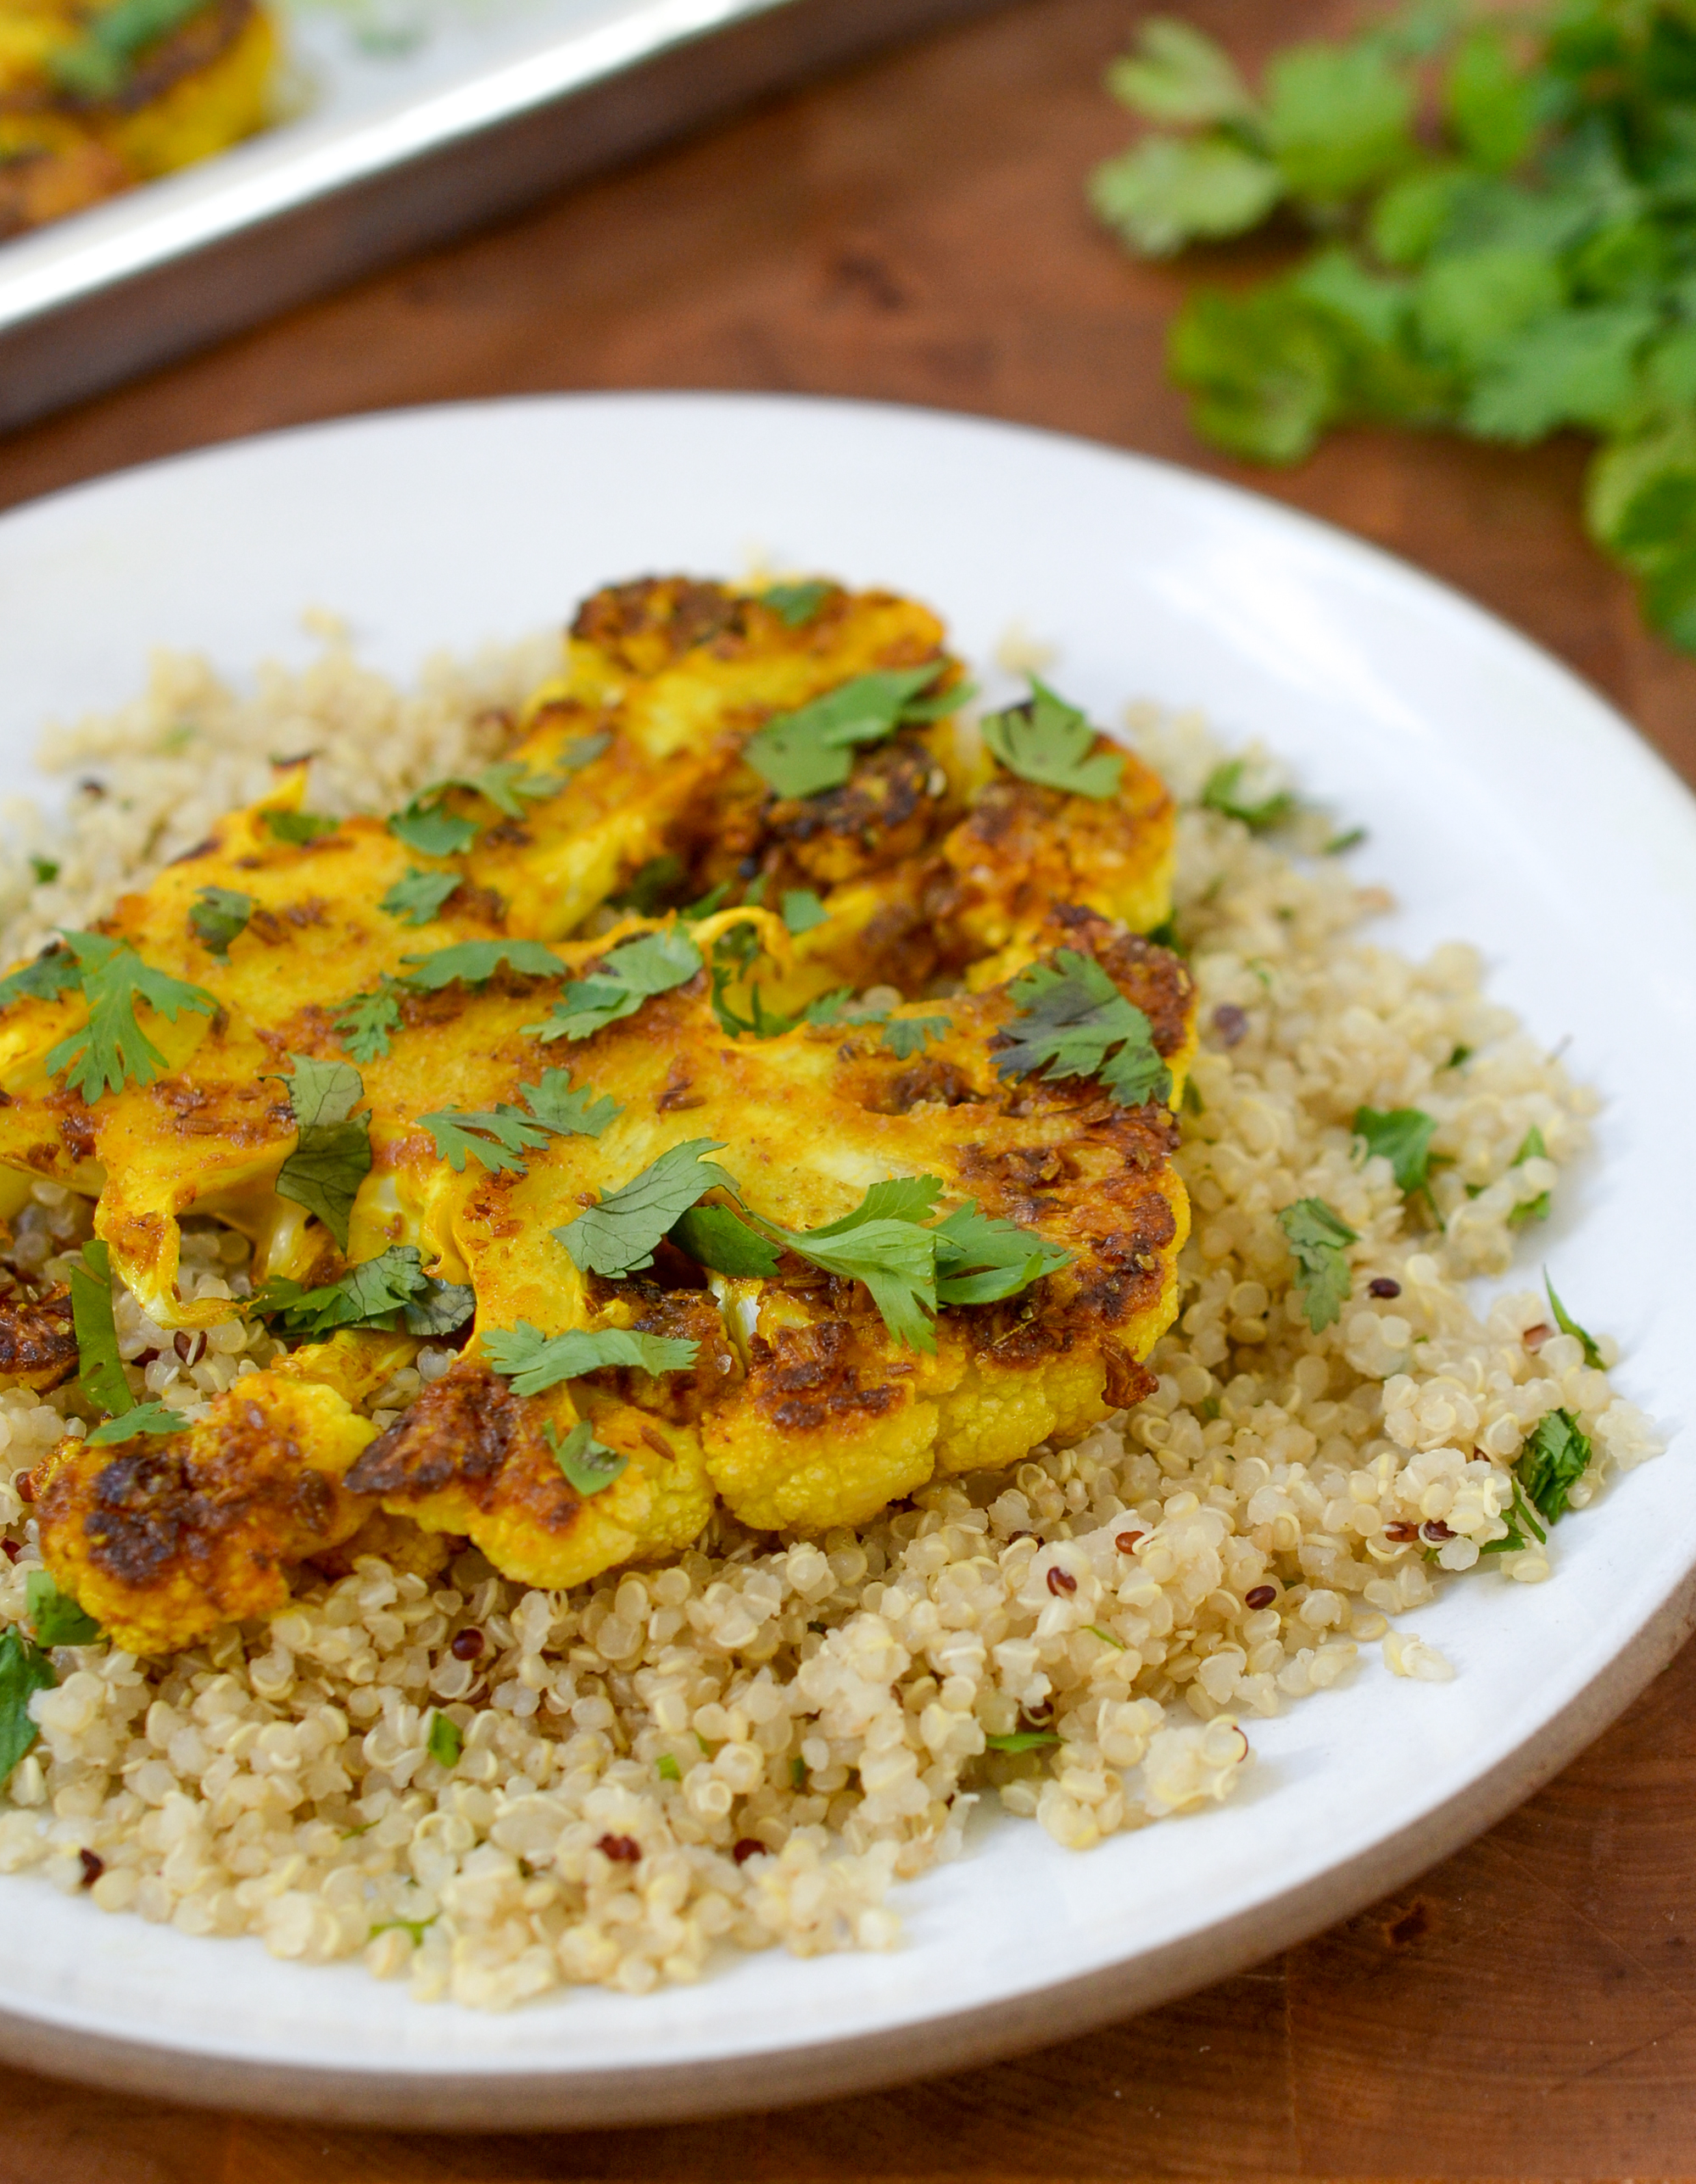 Recipe: Cauliflower Steaks with Ginger, Turmeric, and Cumin | Kitchn